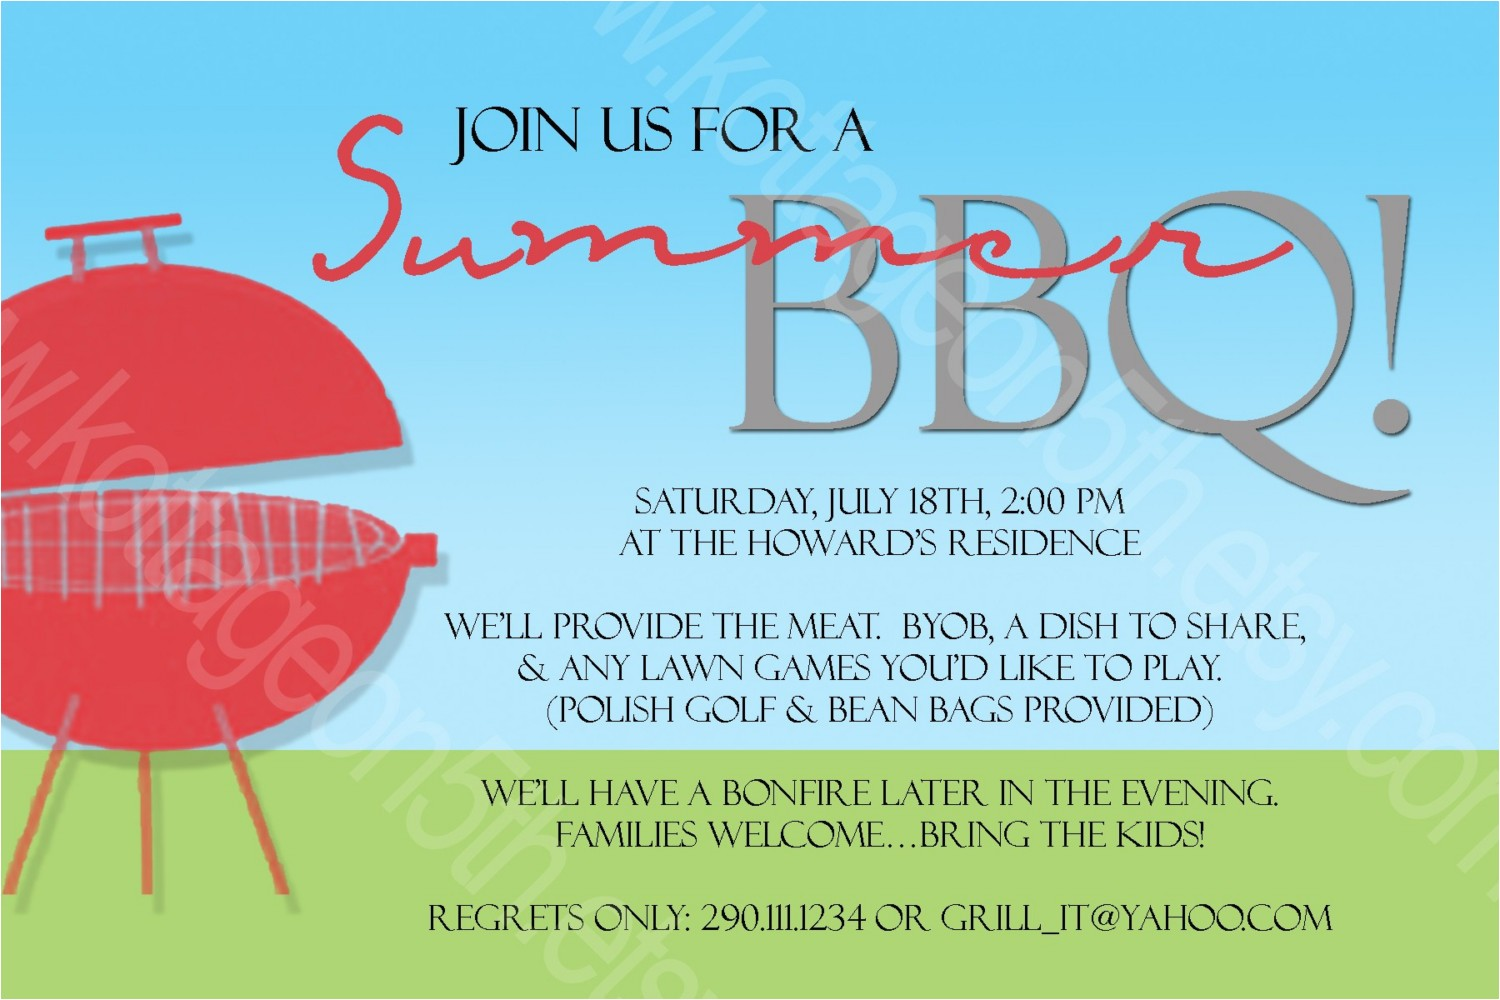 p summer bbq invitation word template 1682112